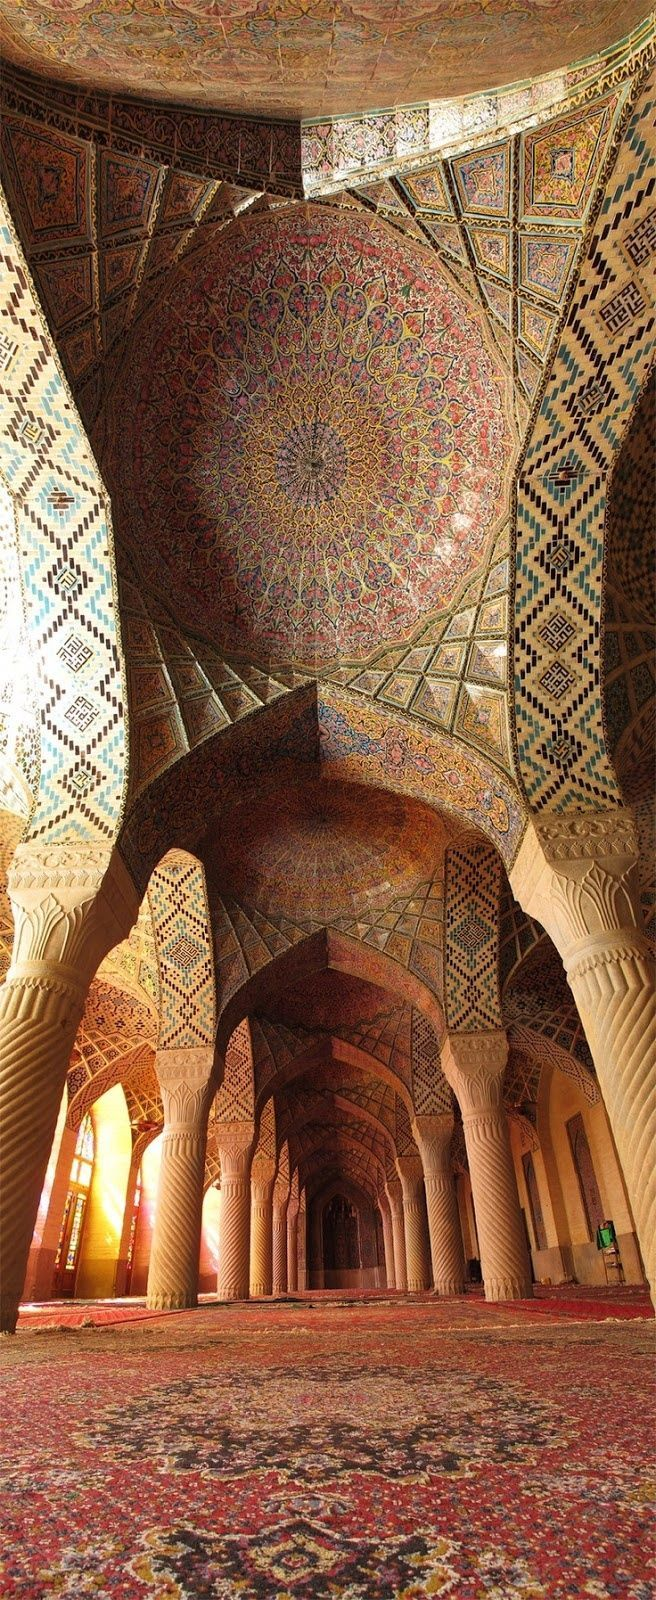 Nasir al-Mulk Mosque - Shiraz, Iran. Took some serious math (and a lot of skilled craftsmen) to make this!